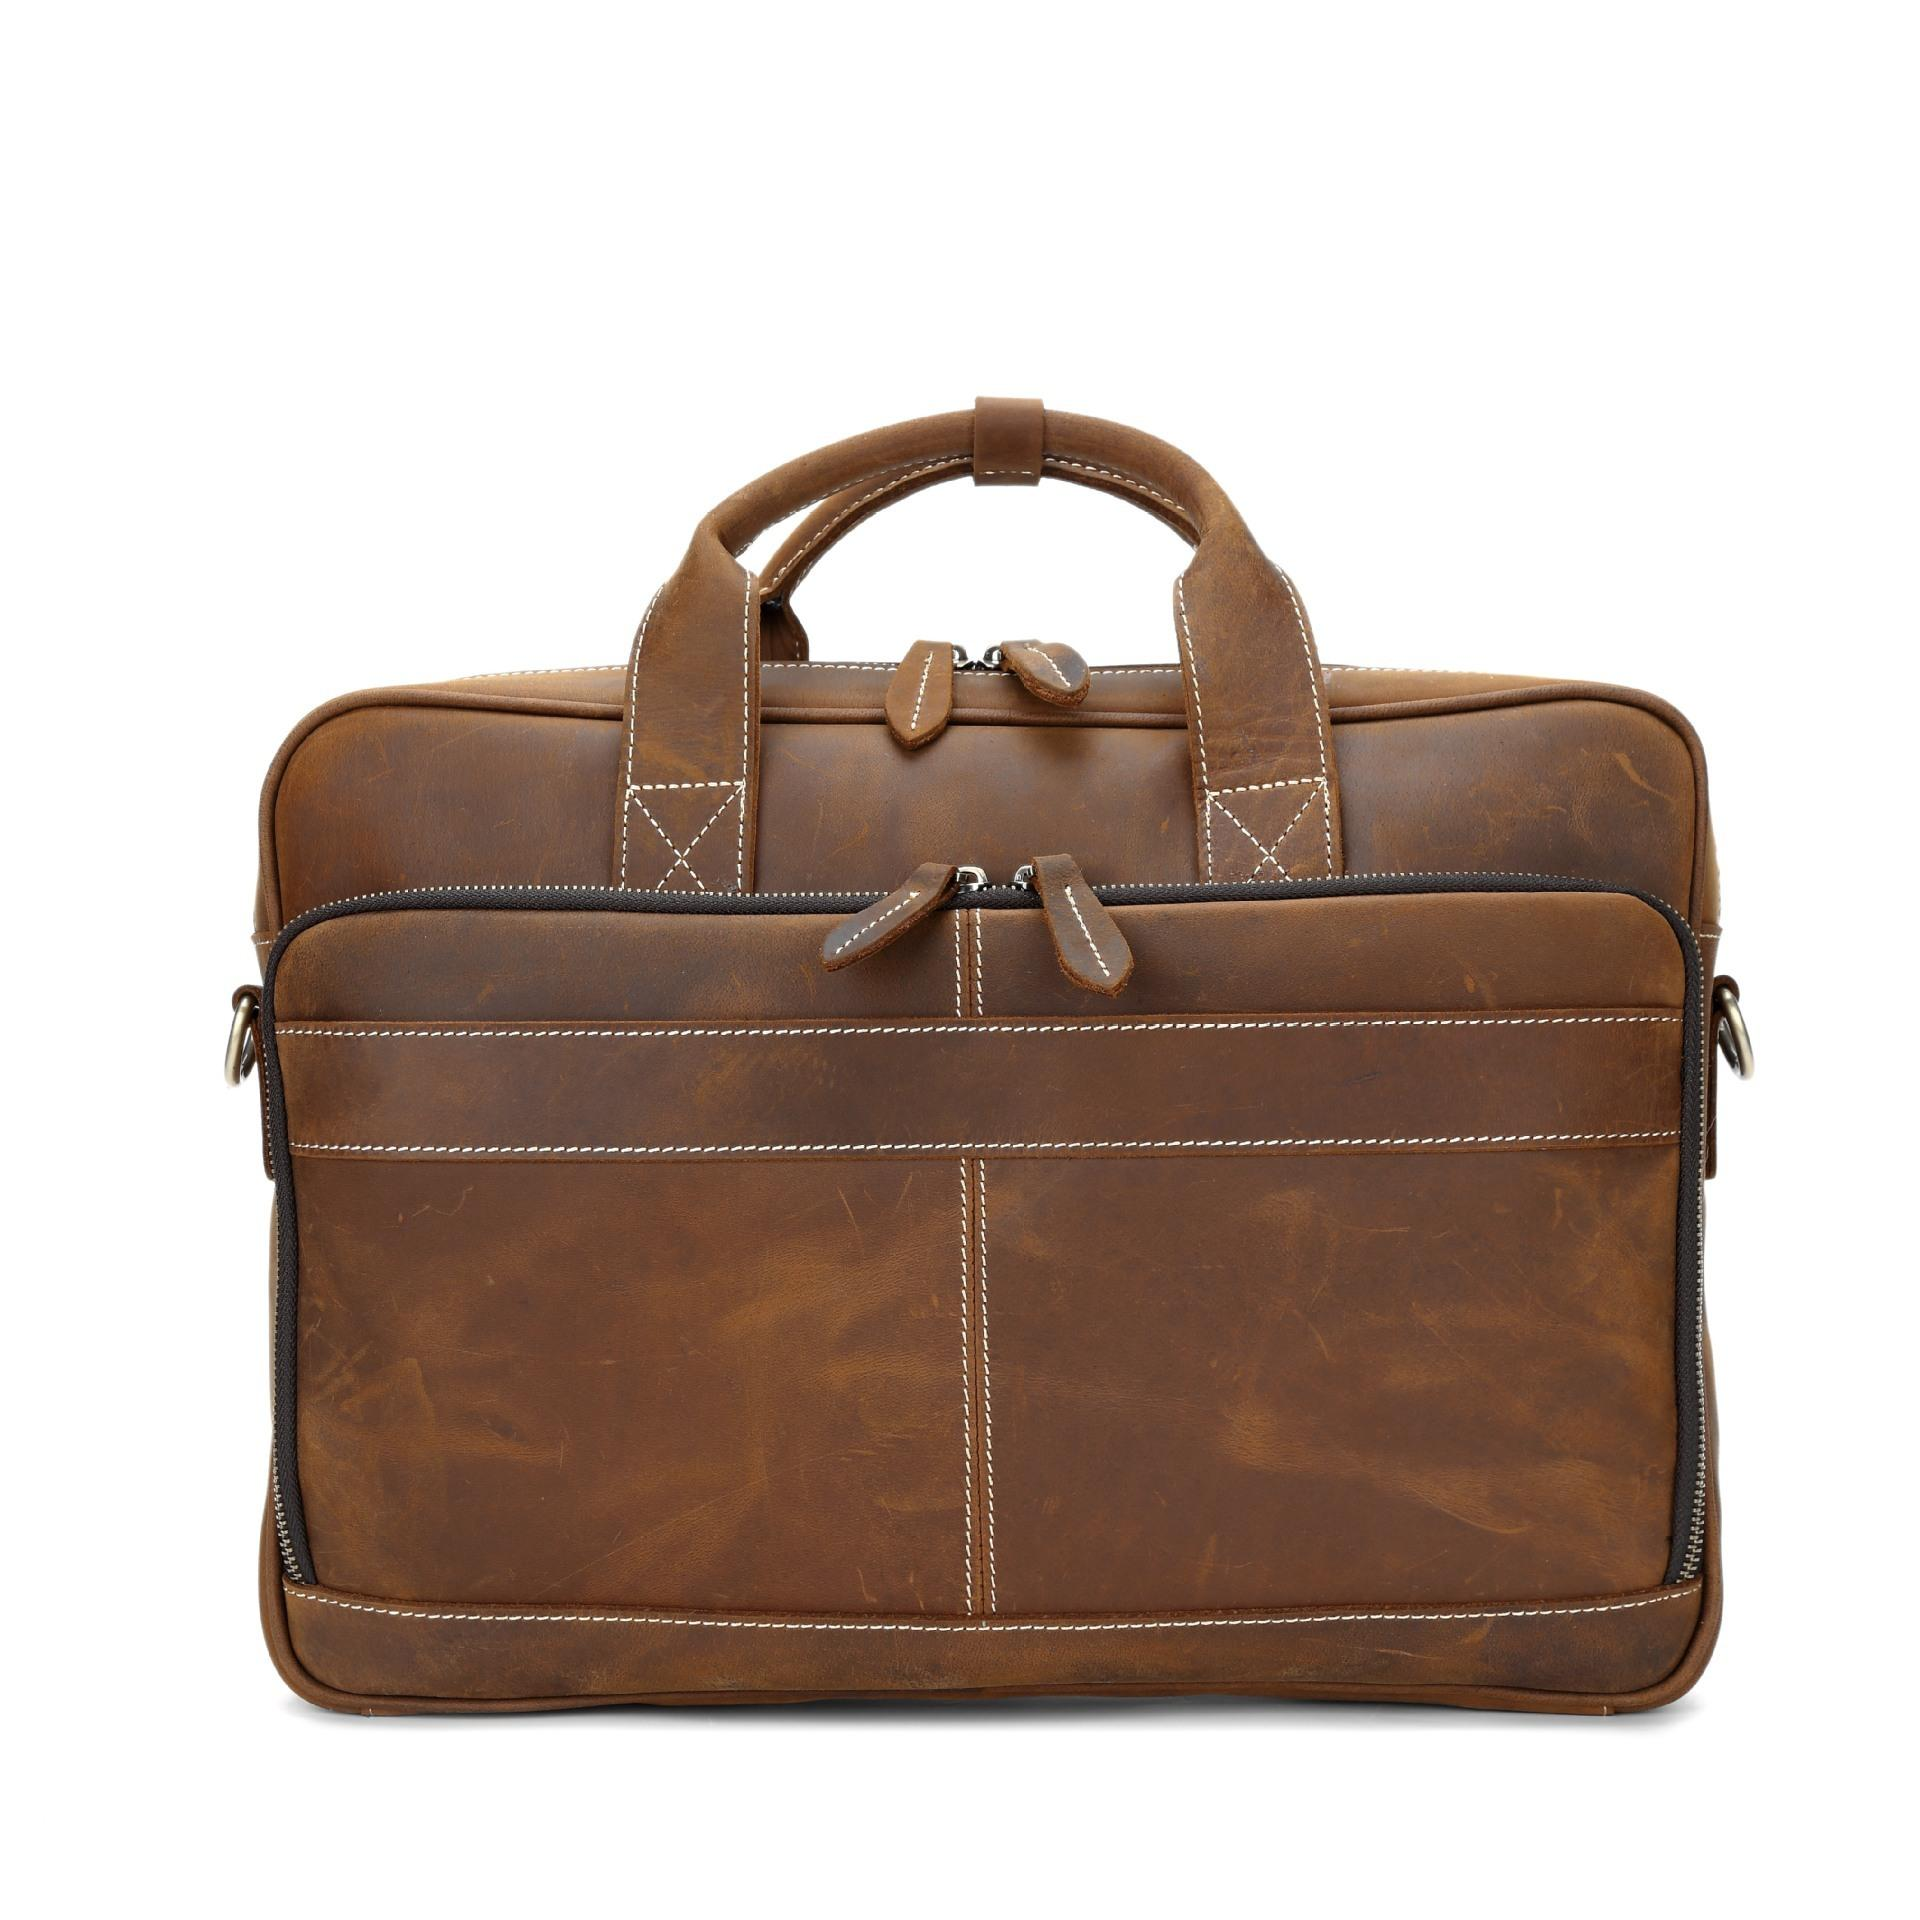 HBPVintage cow leather men casual large laptop business briefcase tote crossbody bags Q0112